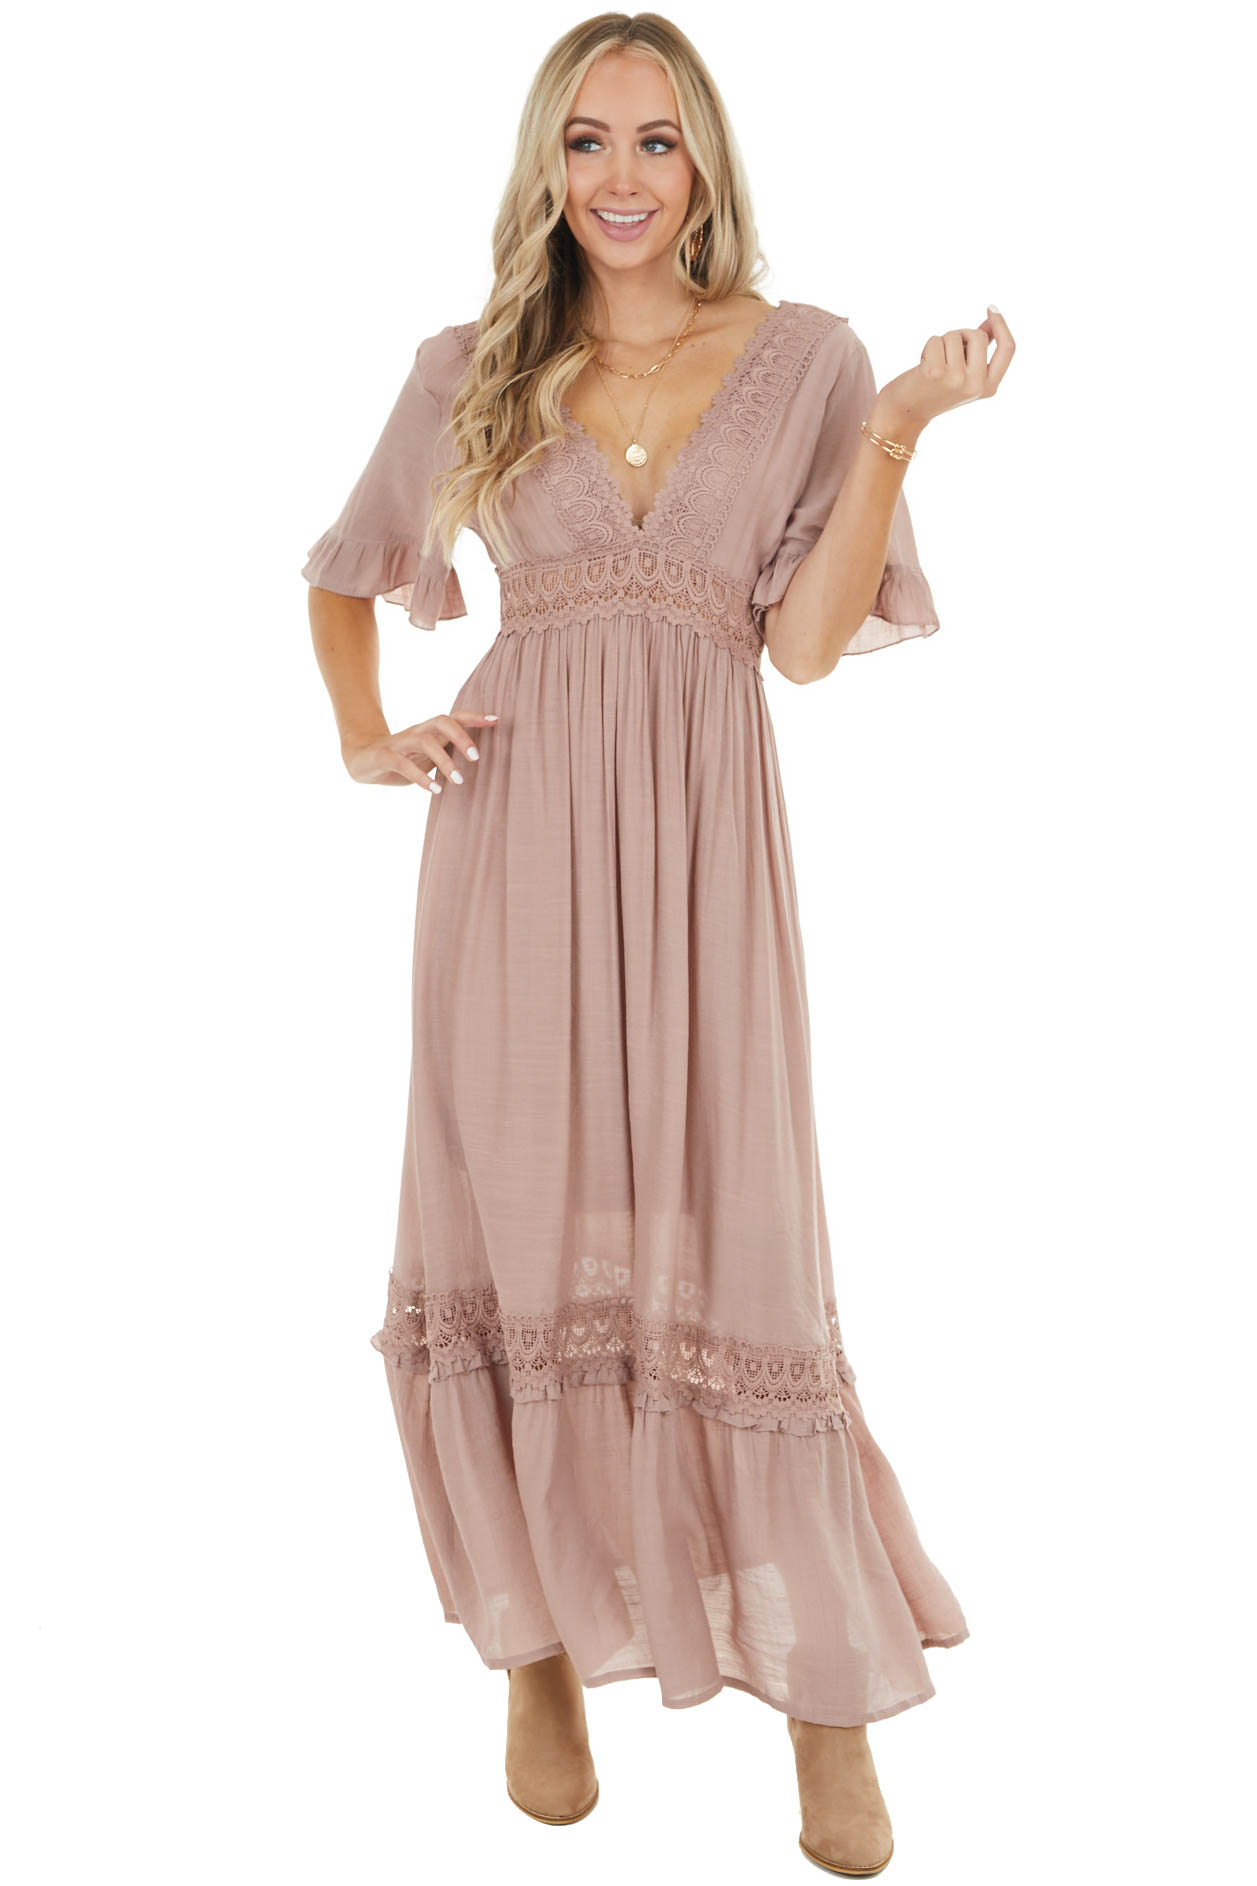 Dusty Rose Short Ruffle Sleeve Maxi Dress with Lace Details